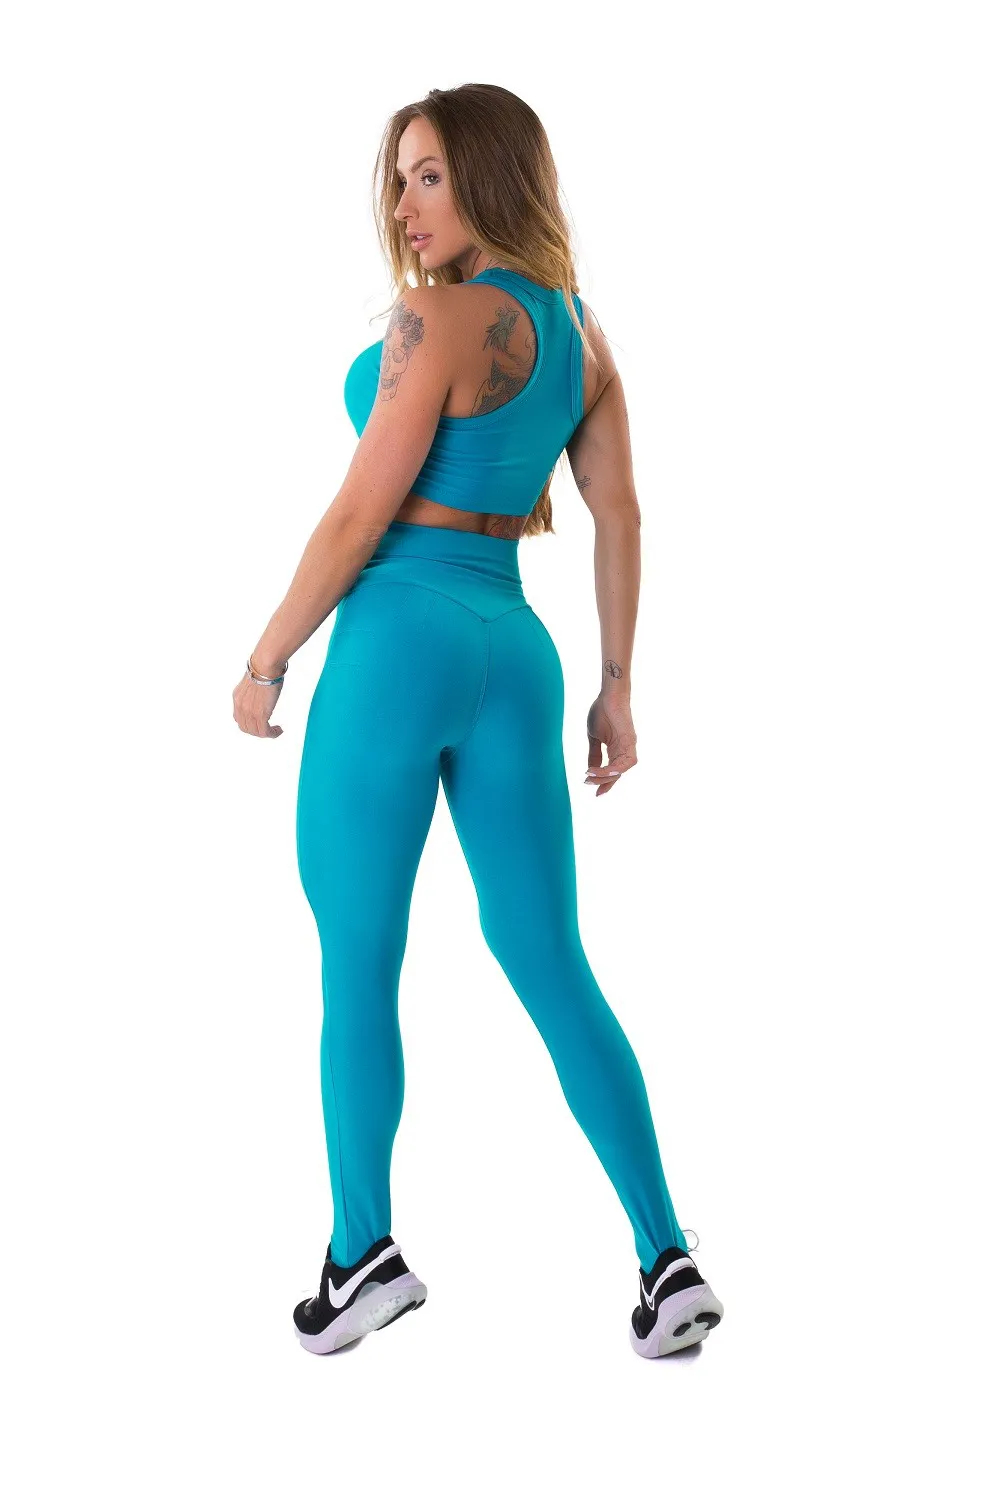 LEGGING ENERGETIC PUSH UP ACQUA LET'SGYM